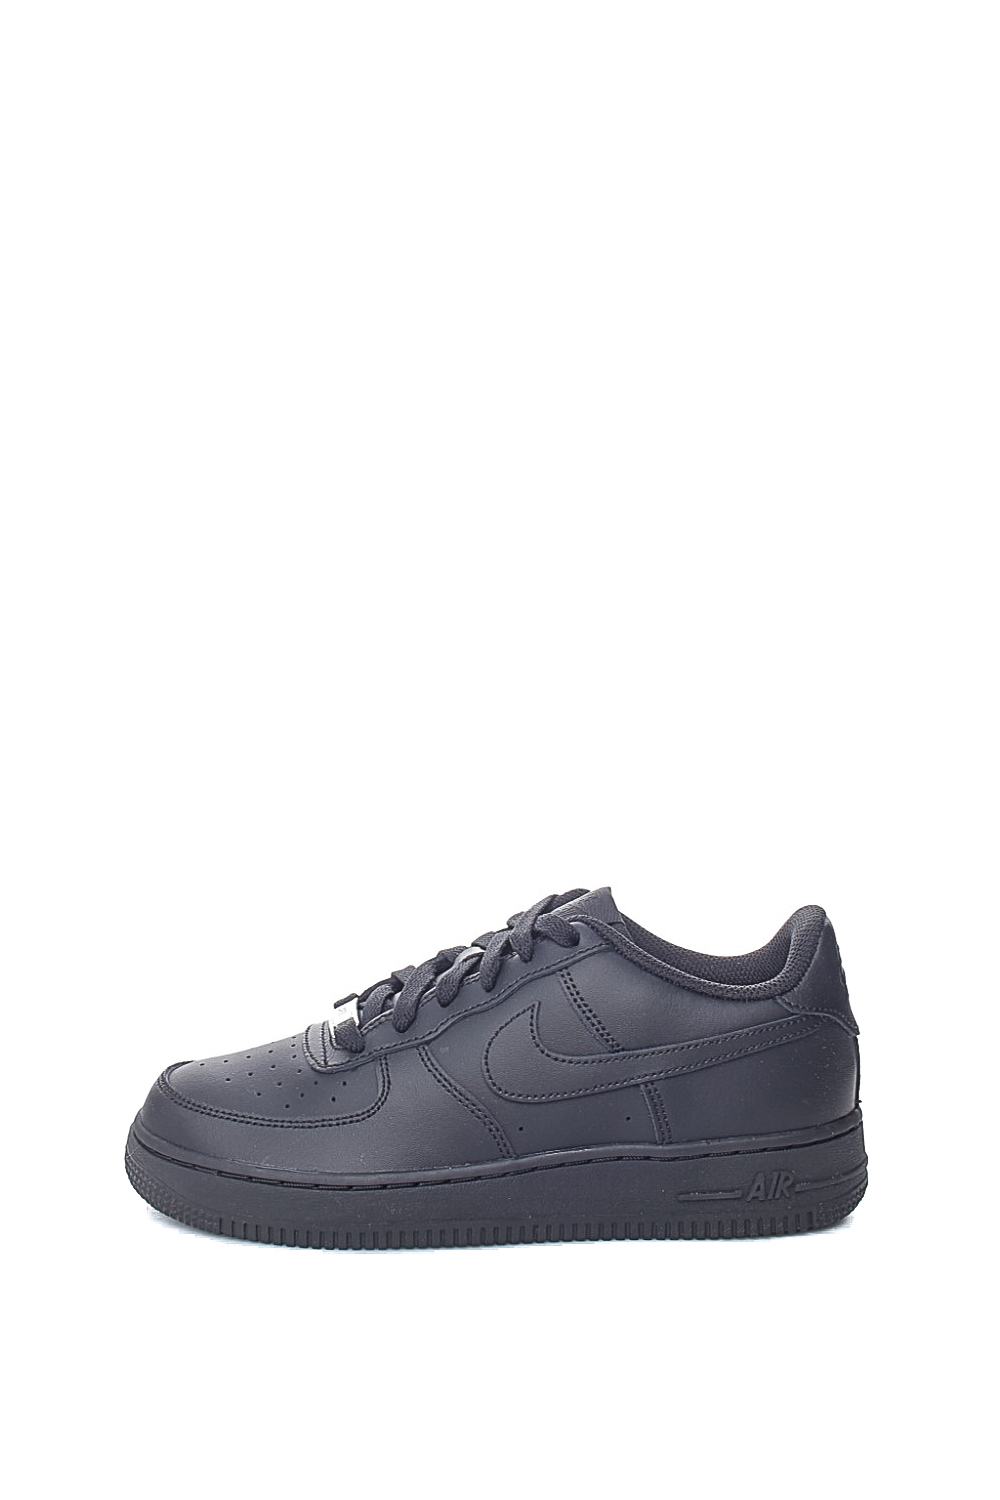 NIKE – Παιδικά παπούτσια basketball NIKE AIR FORCE 1 μαύρα